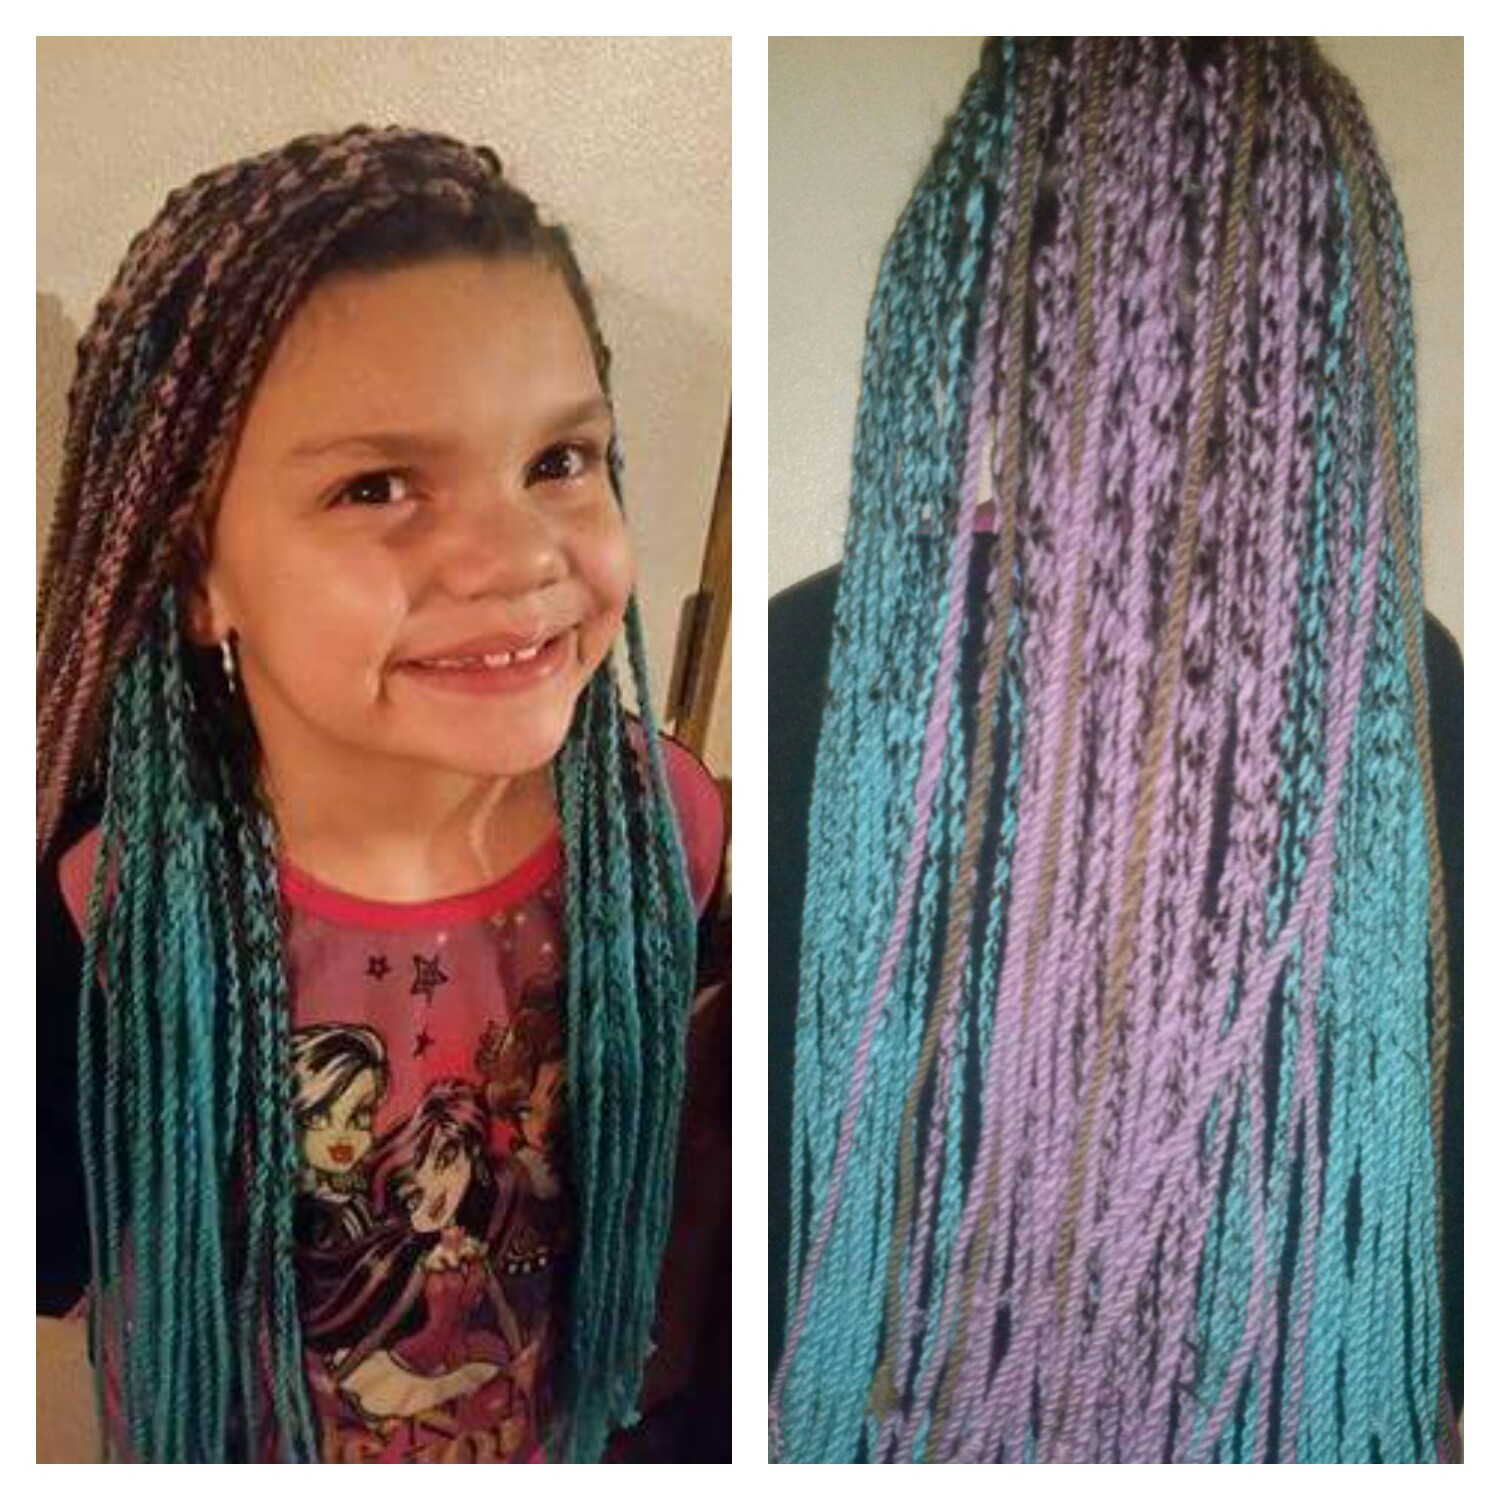 Diy Hair Extensions With Yarn - Diy (Do It Your Self)